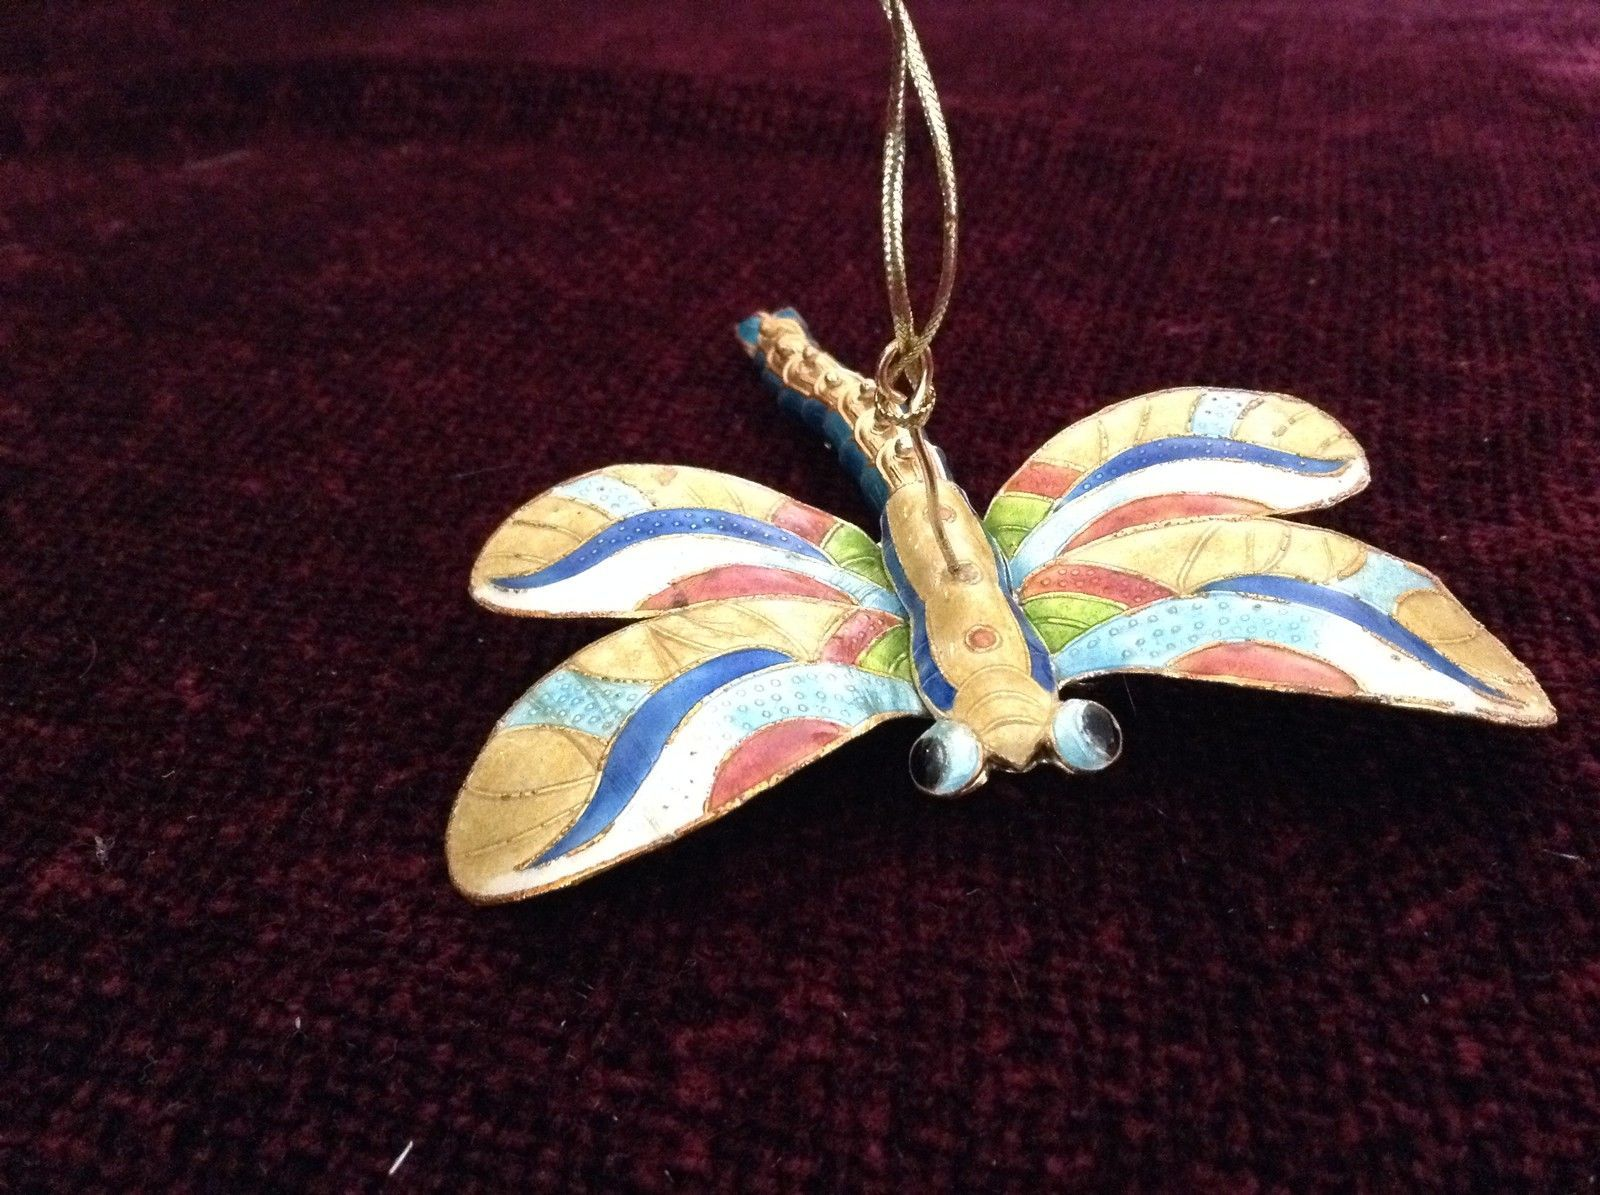 Gold Tone and Blue Four Winged Dragonfly Ornament with Moving Tail